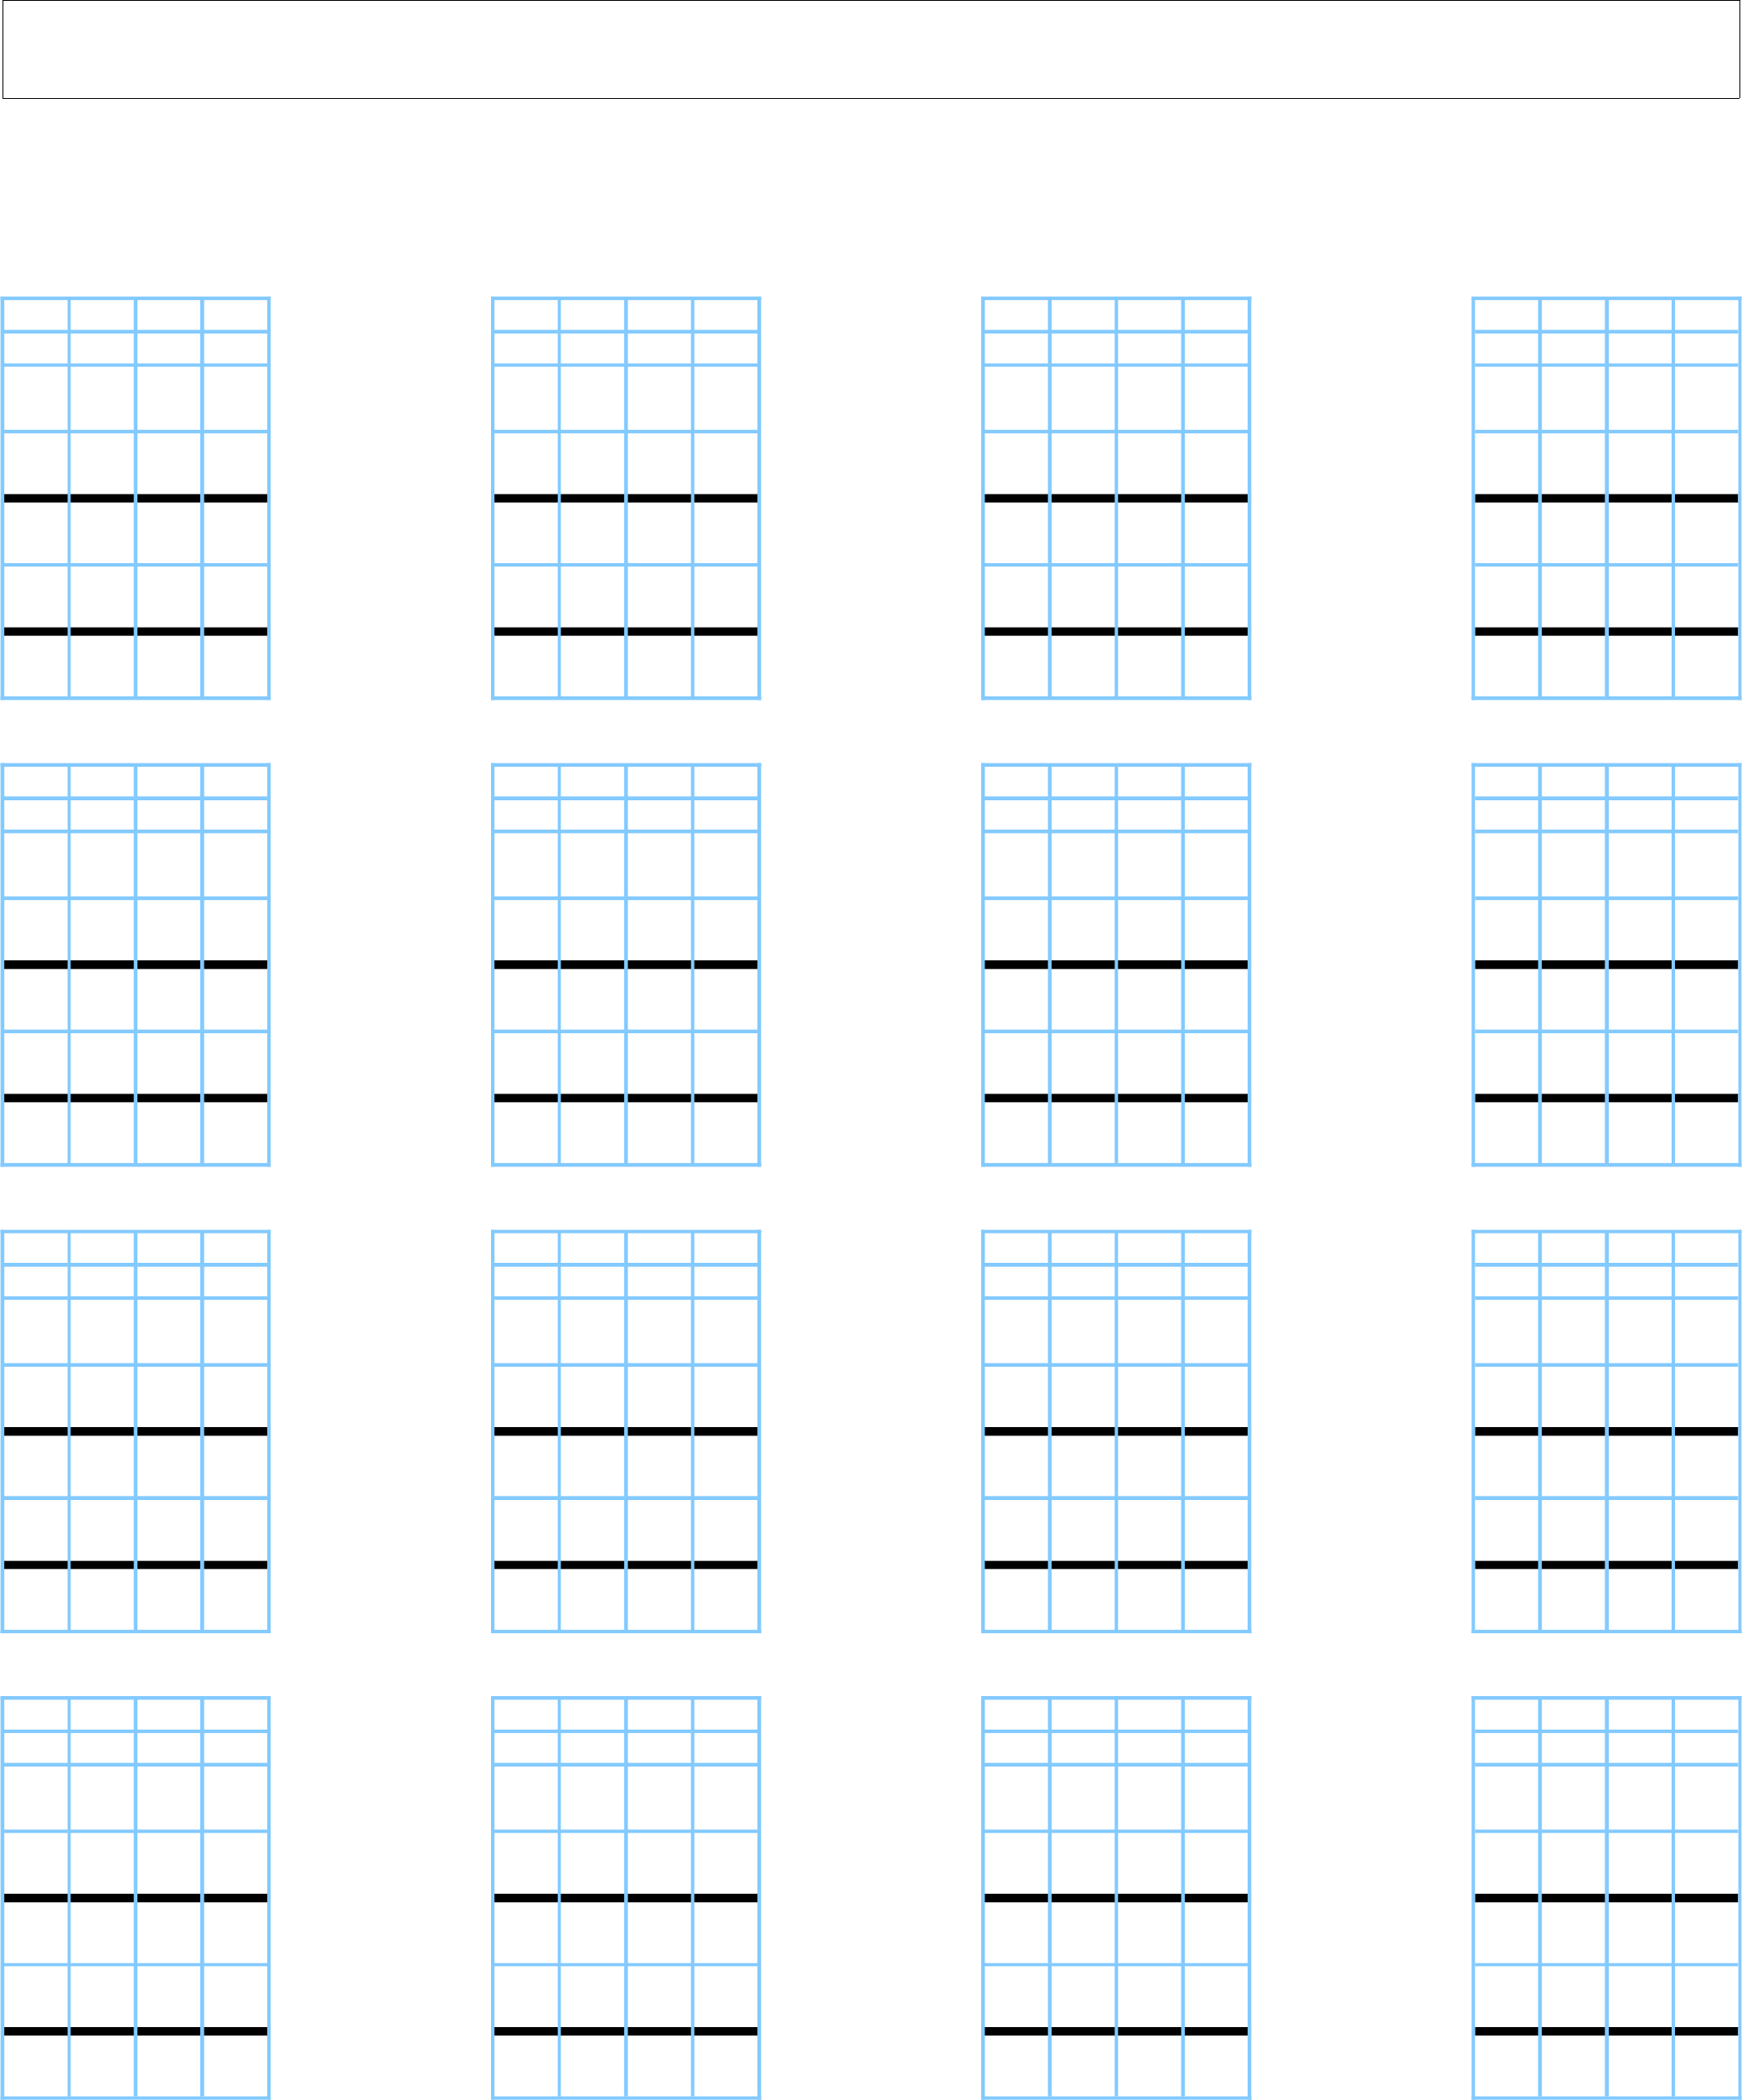 2 Digit By 2 Digit Multiplication Worksheets On Grid Paper Davezan – Multiplication Grid Worksheets